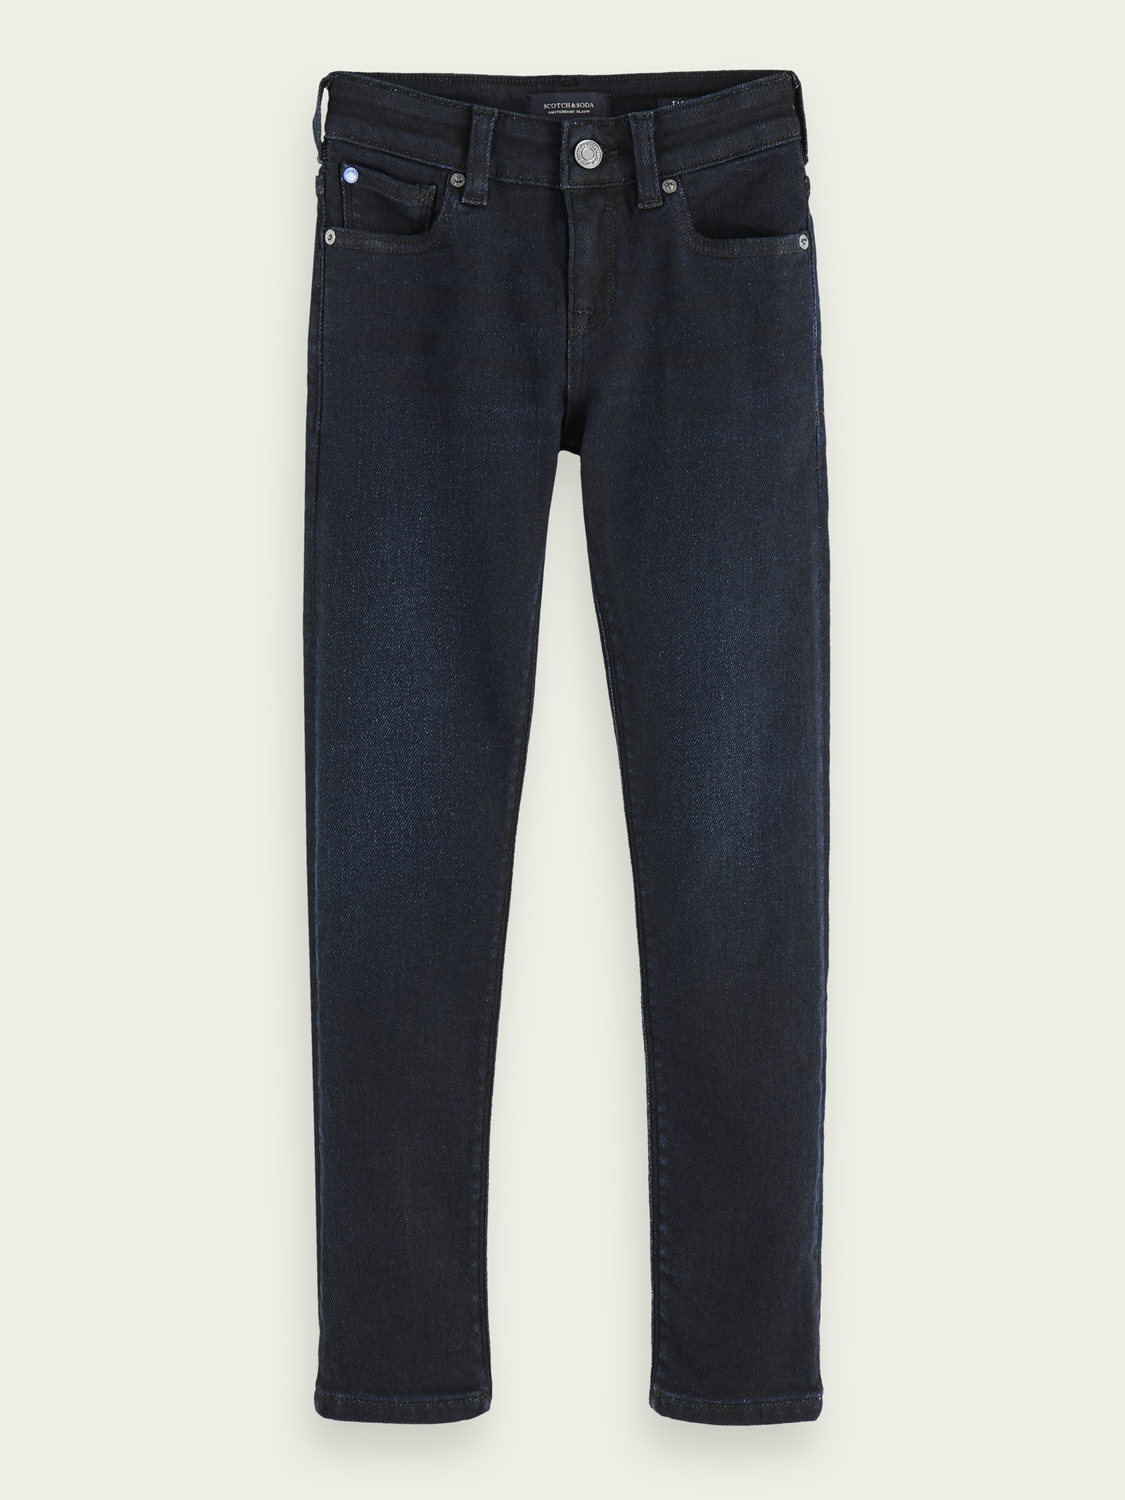 Kids Tigger - Ready To Go | Mid-rise super skinny jeans